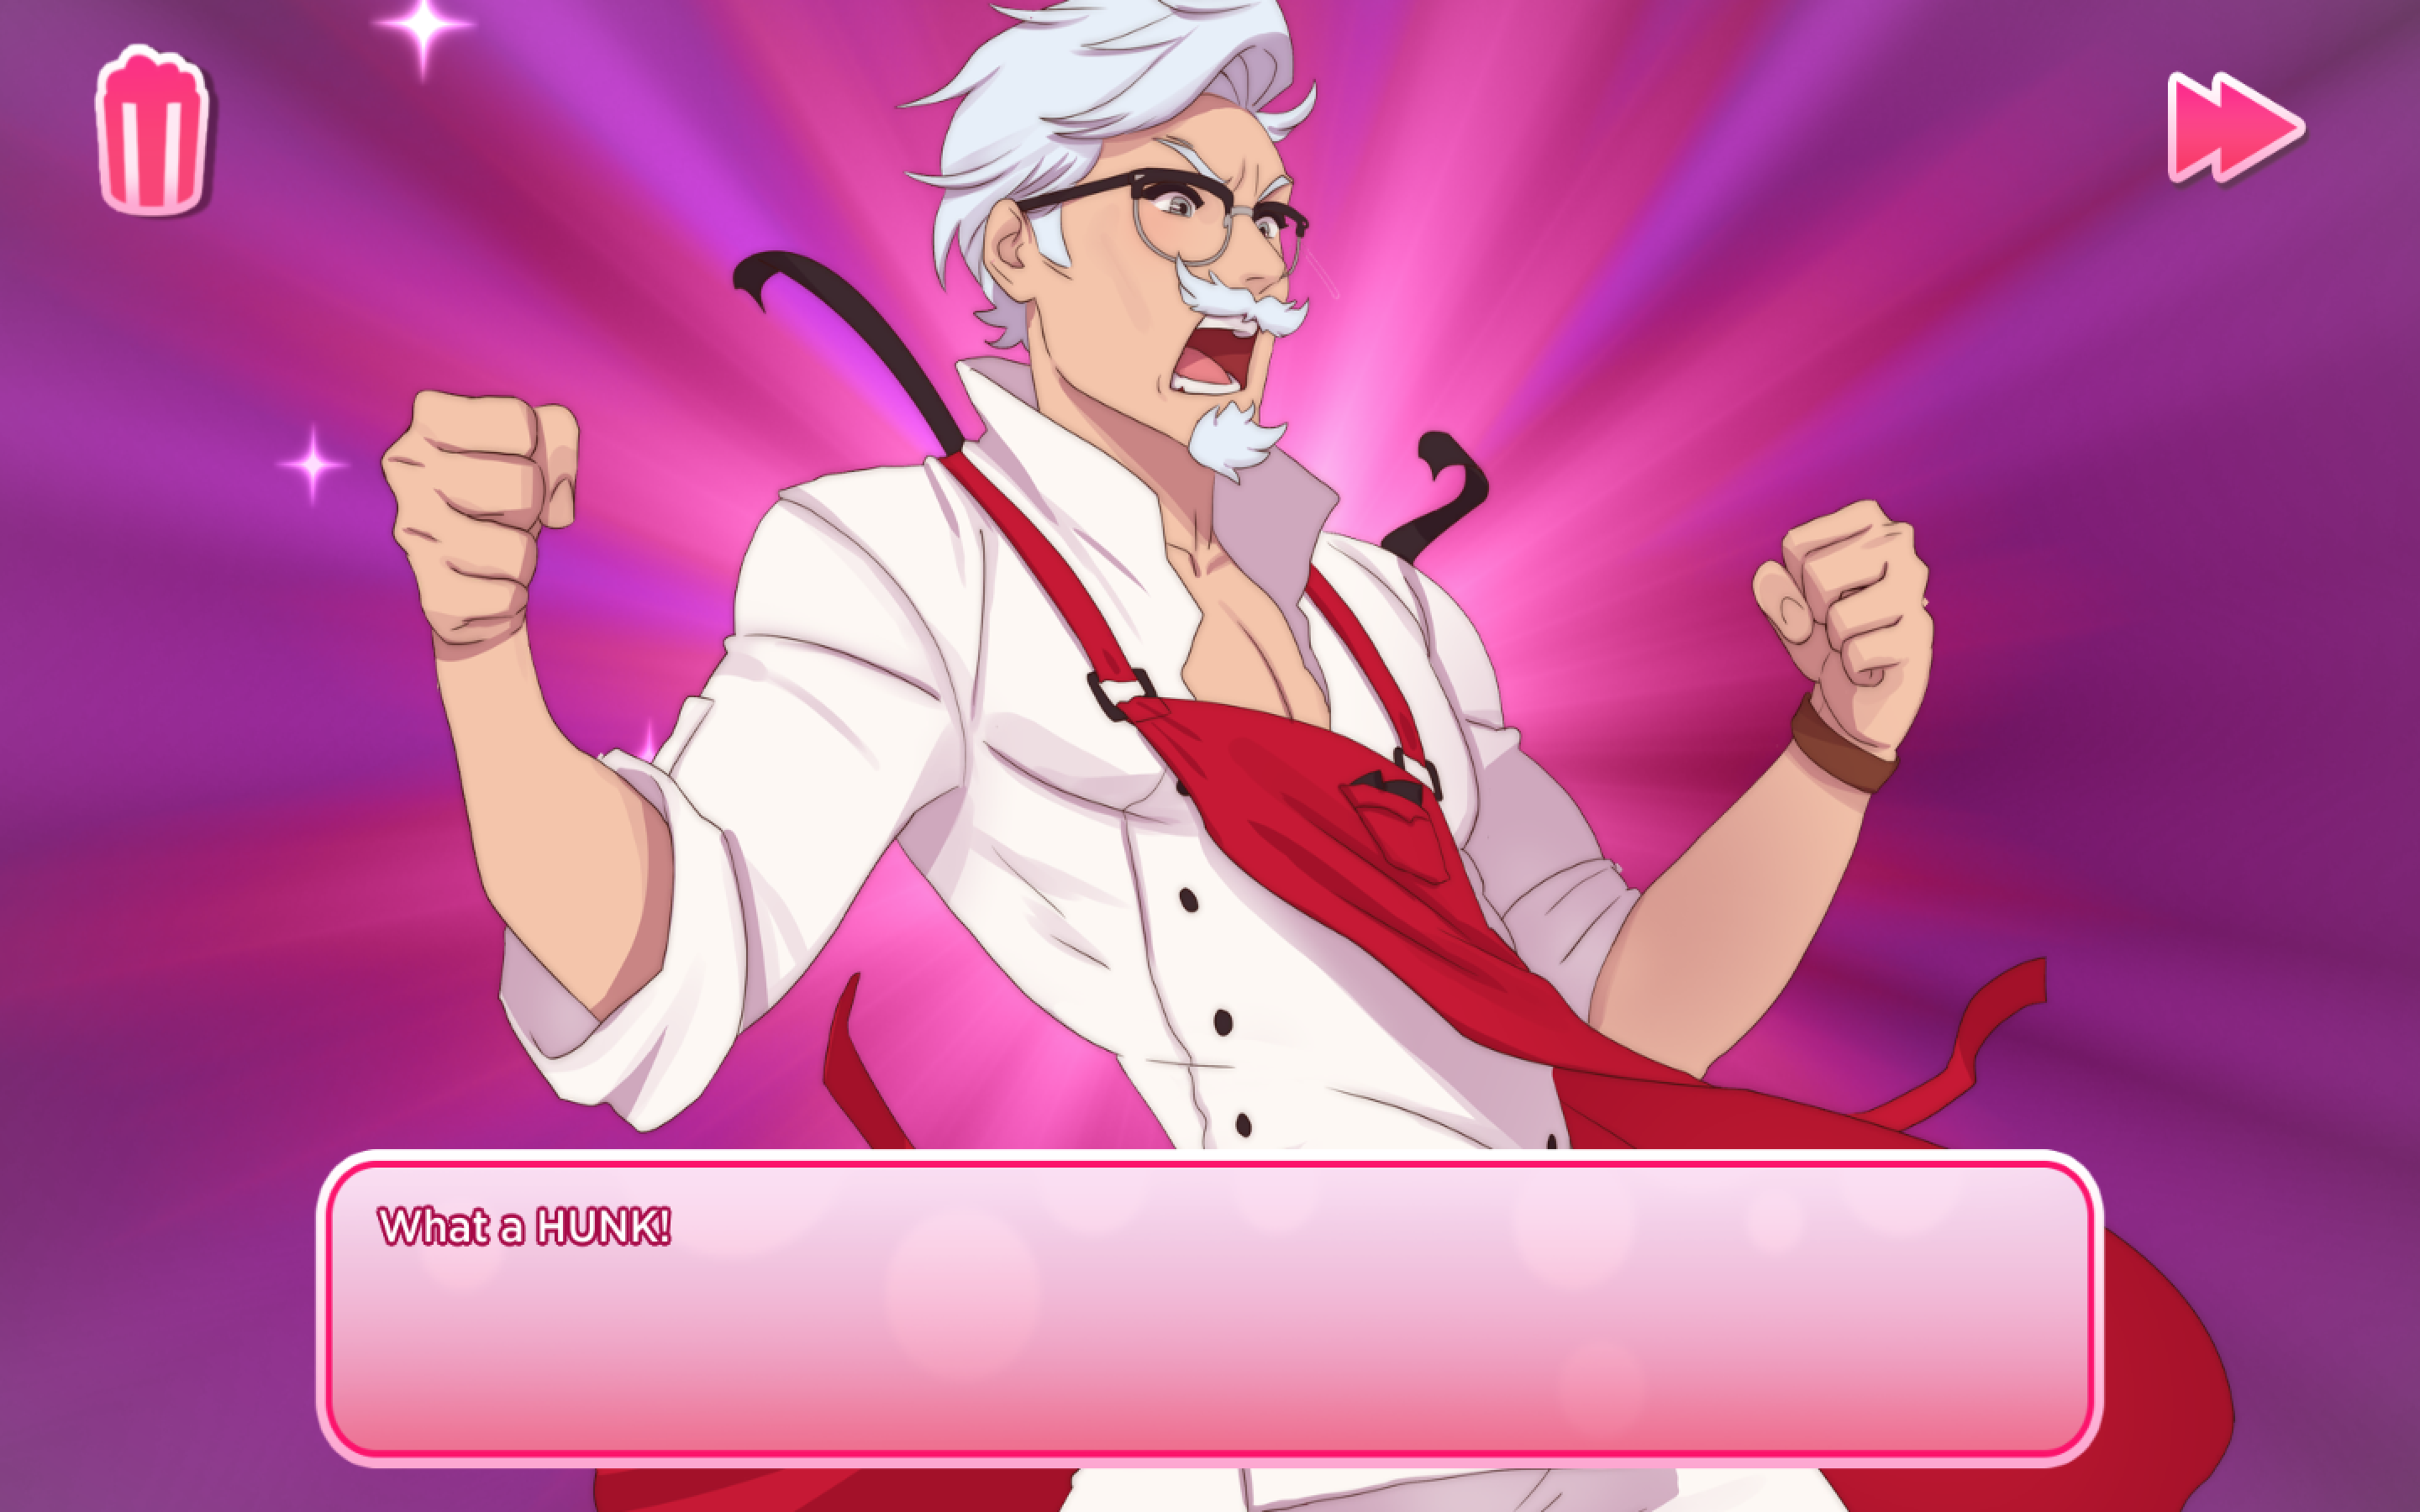 I Spent Three Hours Getting Colonel Sanders to Fall in Love With Me on KFC's New Dating Video Game